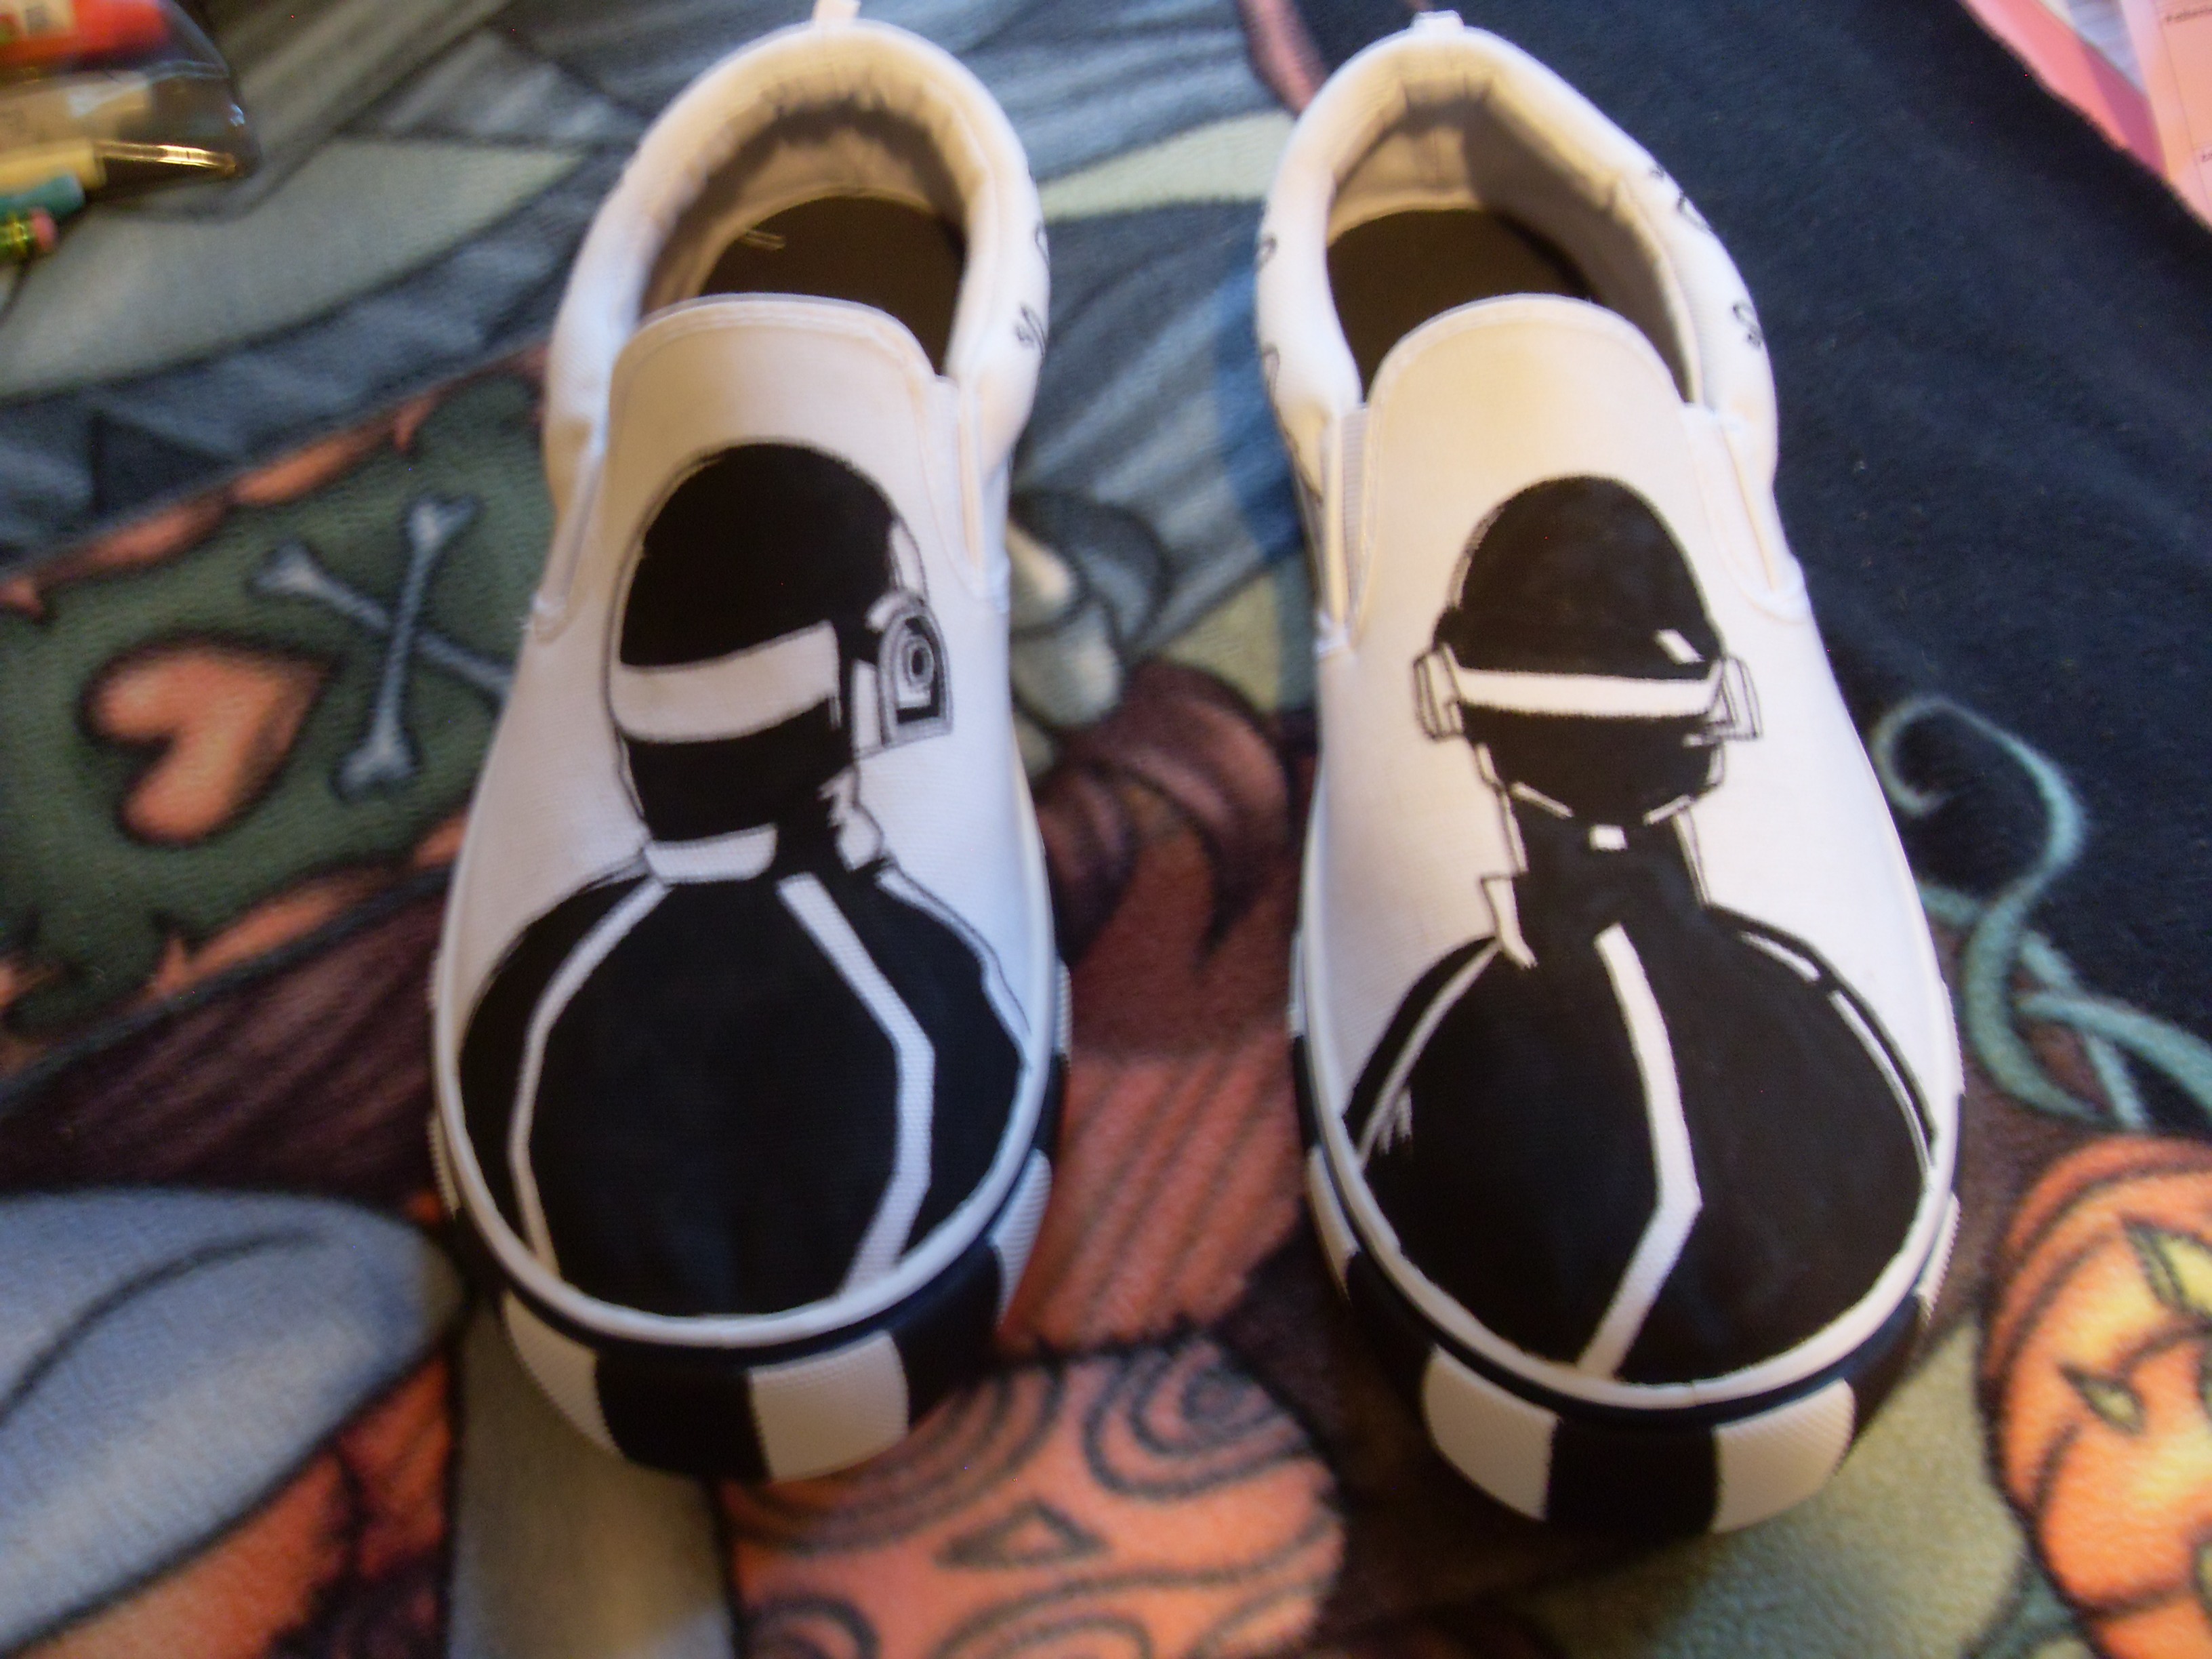 Daft Punk Shoes!